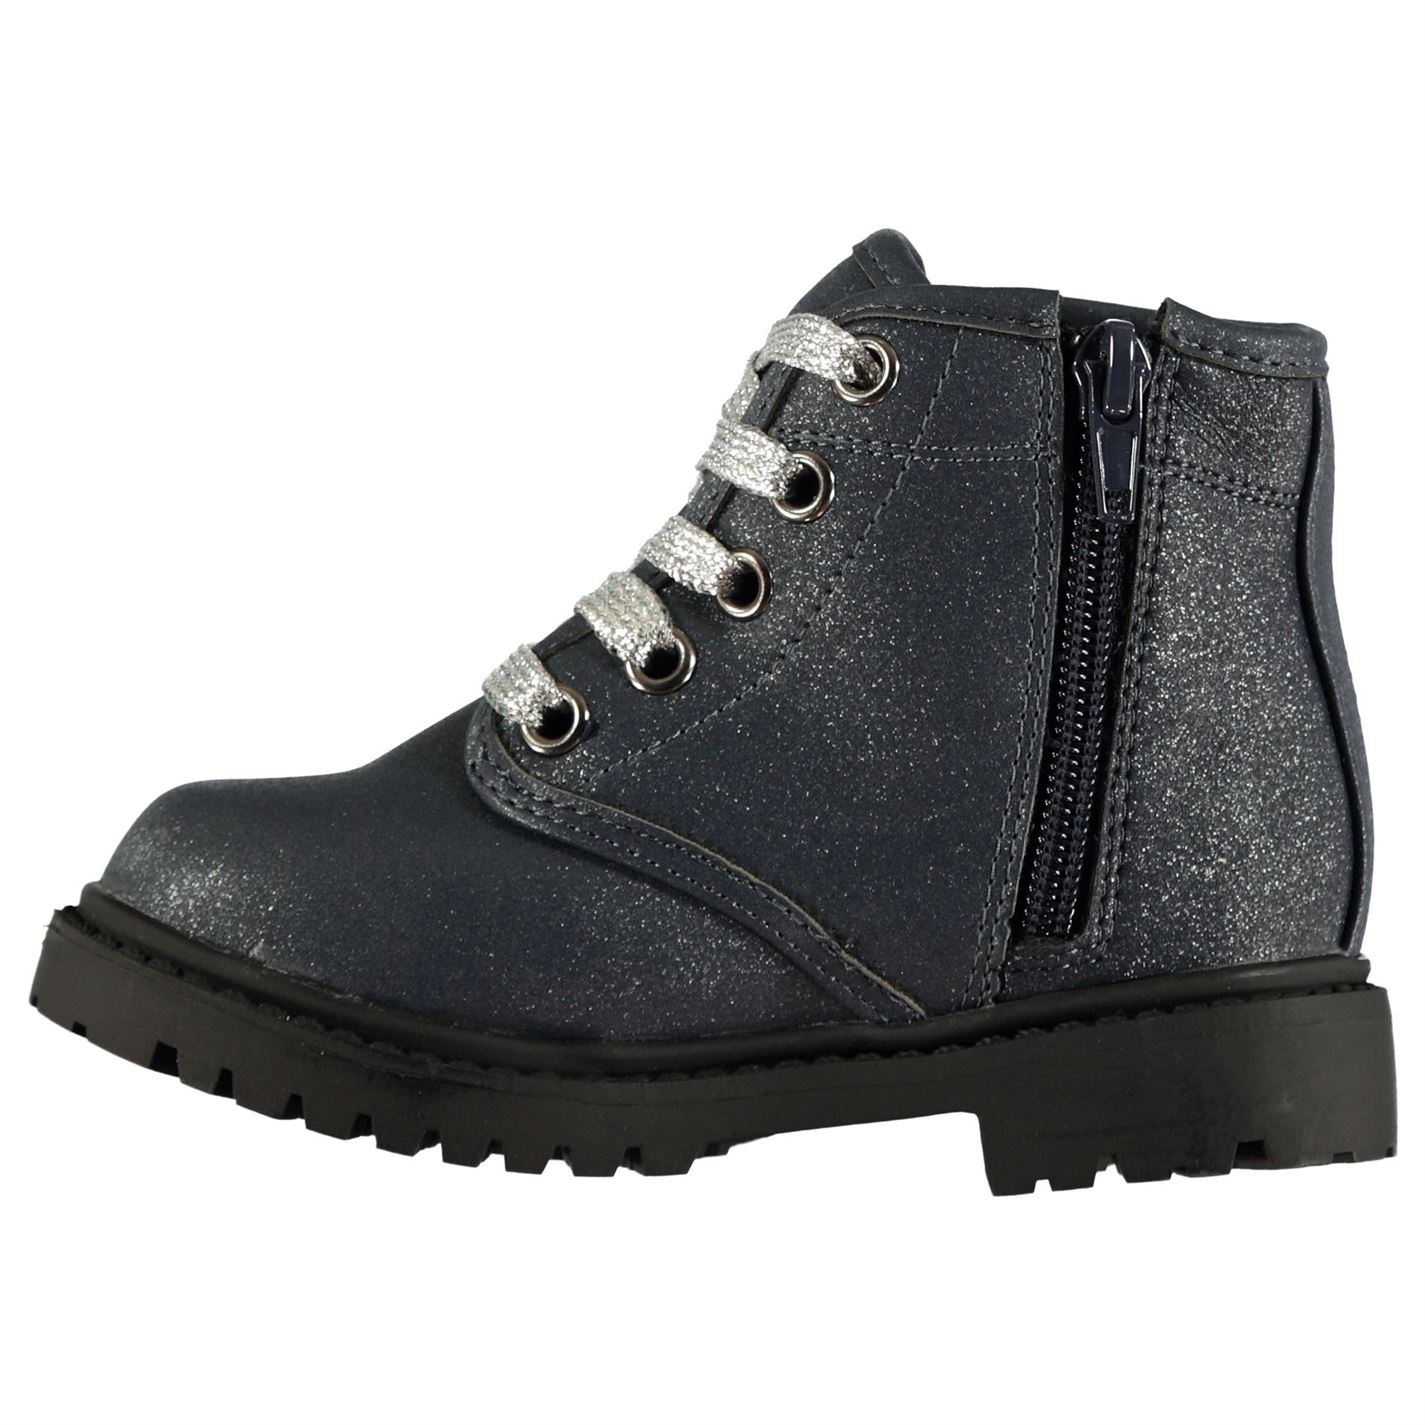 Character Lace Infants Girls Boots Rugged Laces Fastened Zip Textured